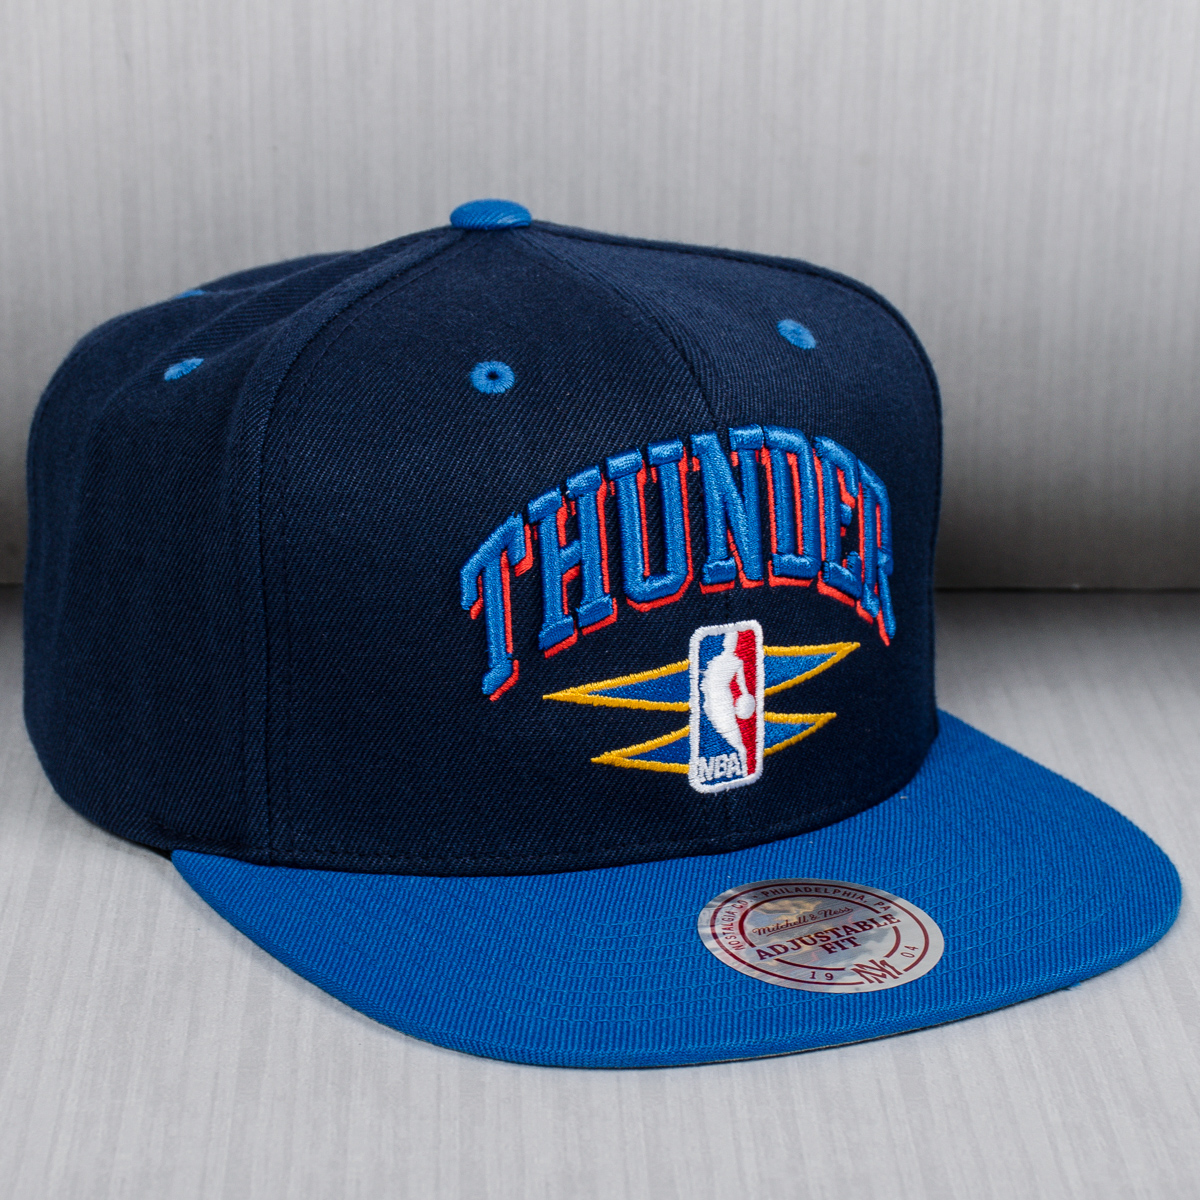 official photos 436b9 71efa Mitchell   Ness NBA Oklahoma City Thunder Double Diamond Snapback Cap - NBA  Shop OKC Thunder Merchandise - Superfanas.lt